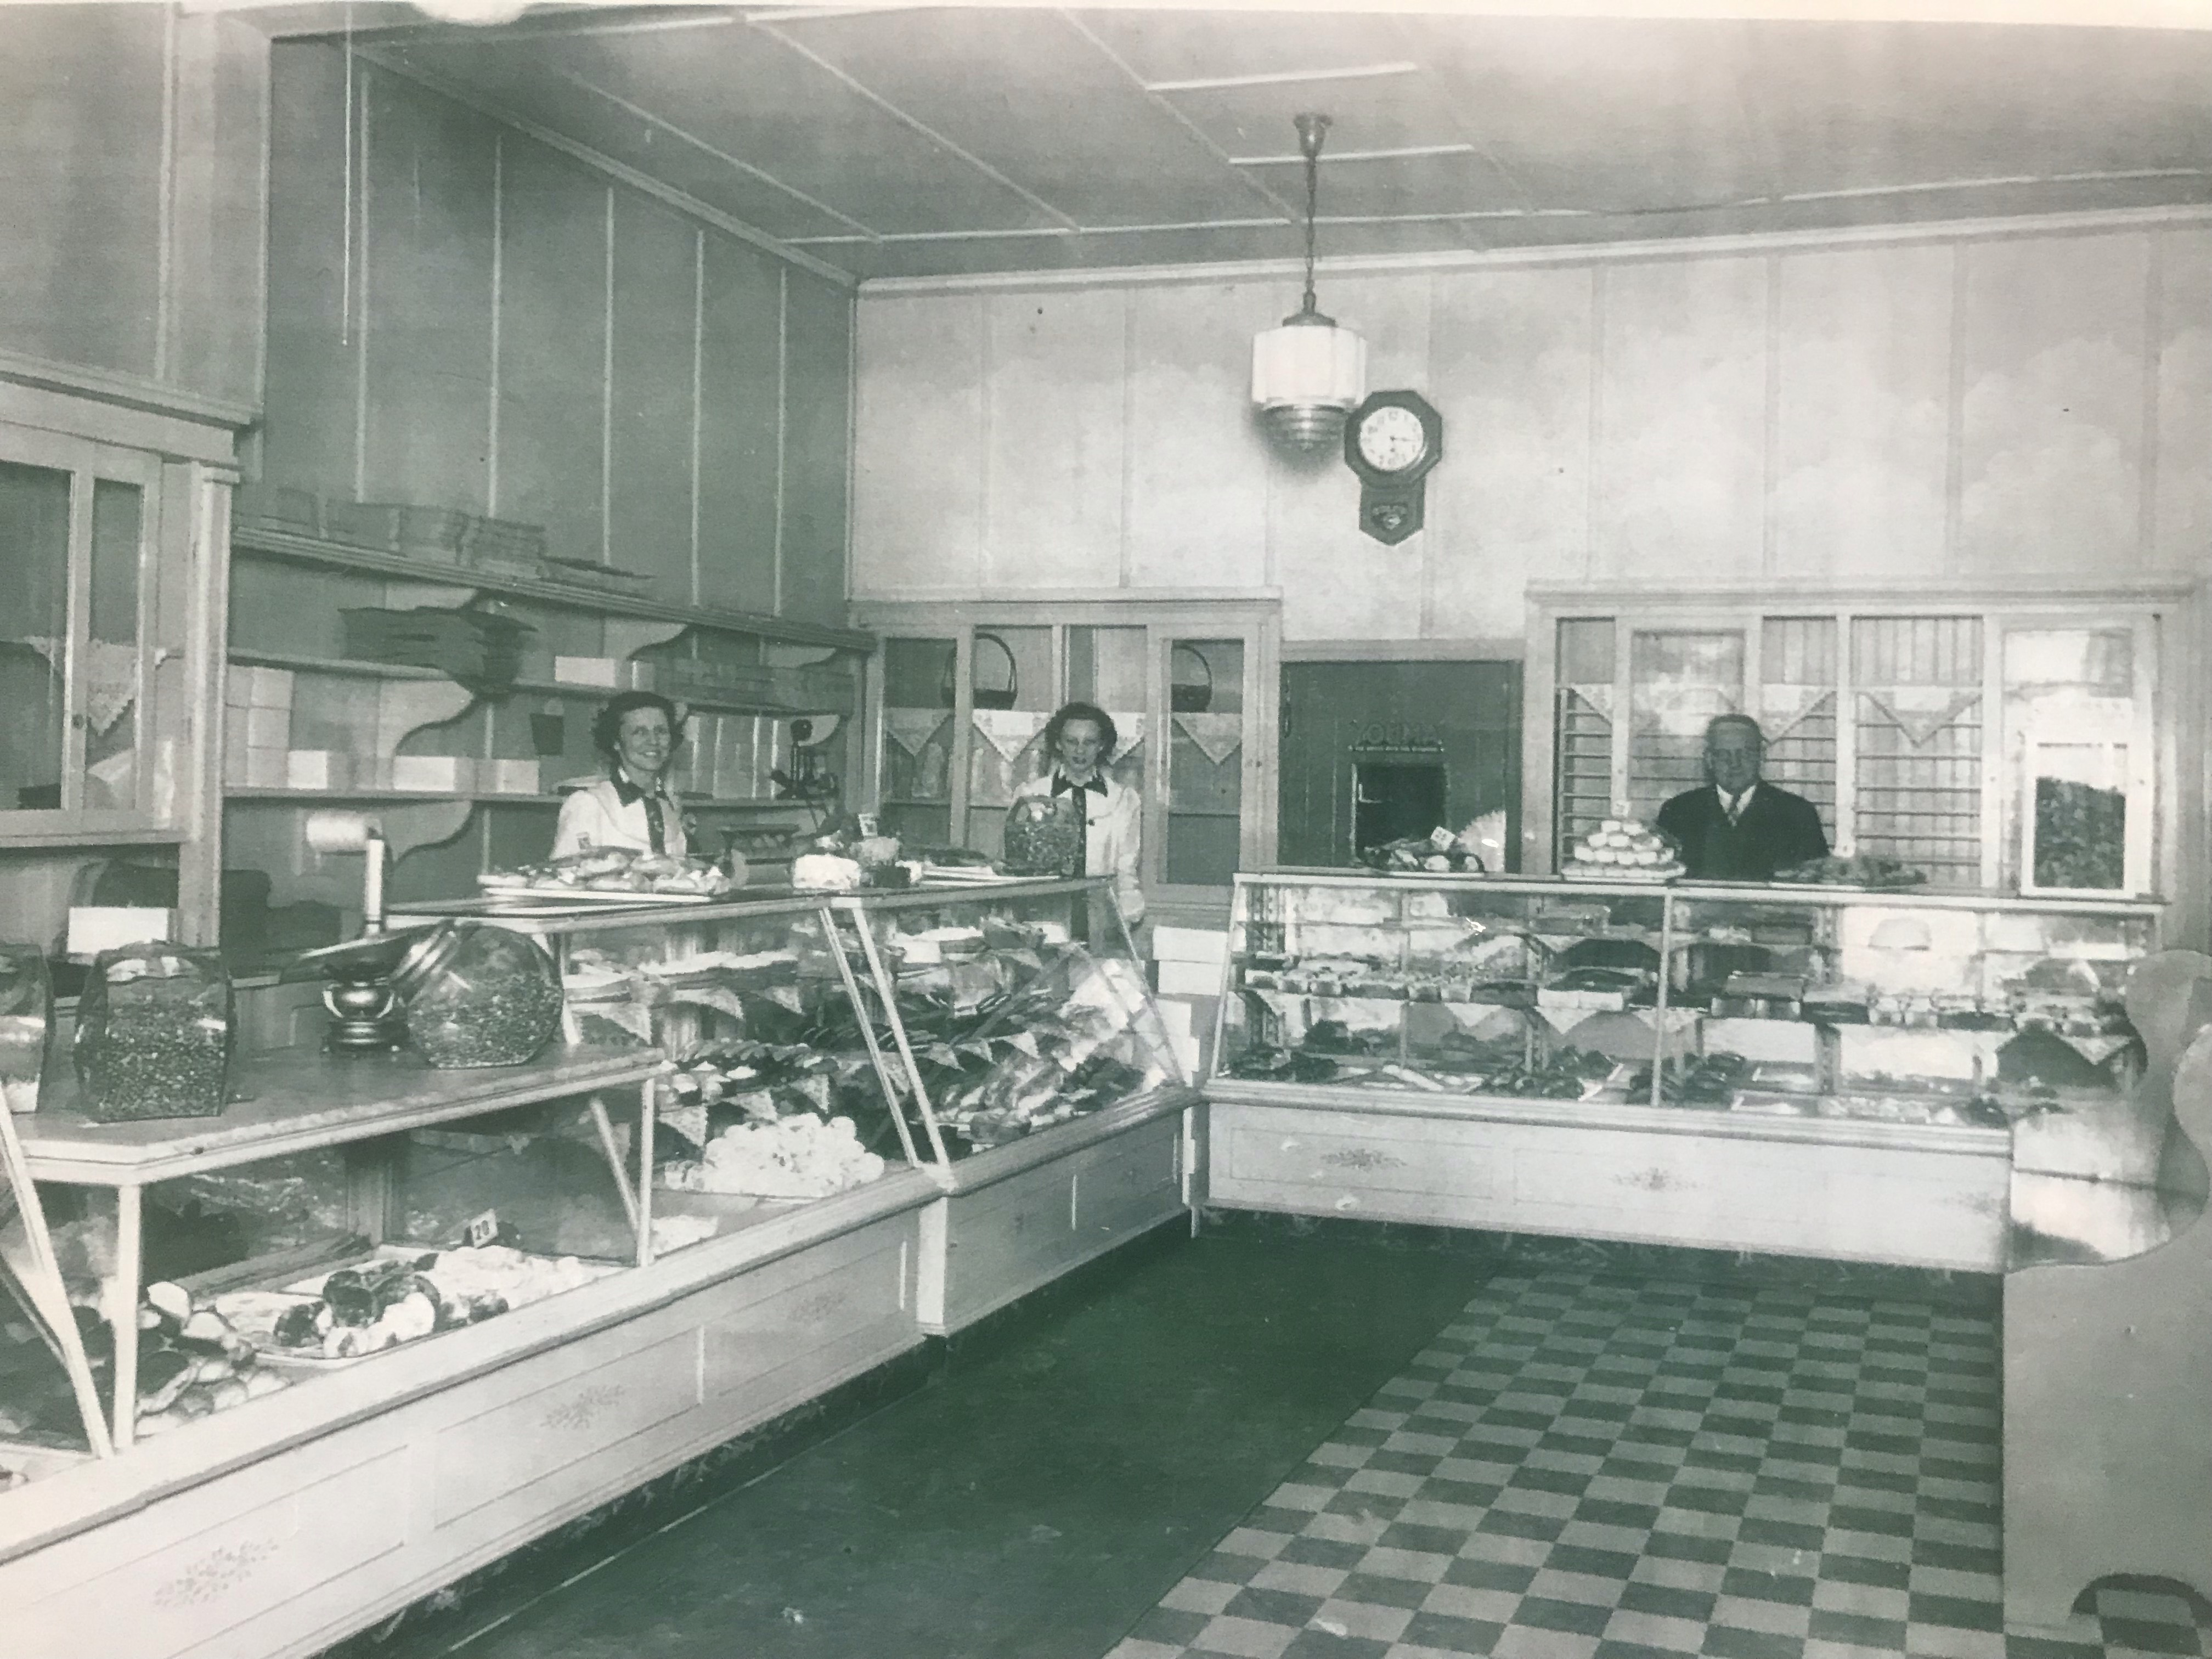 Old Reilly's Bakery